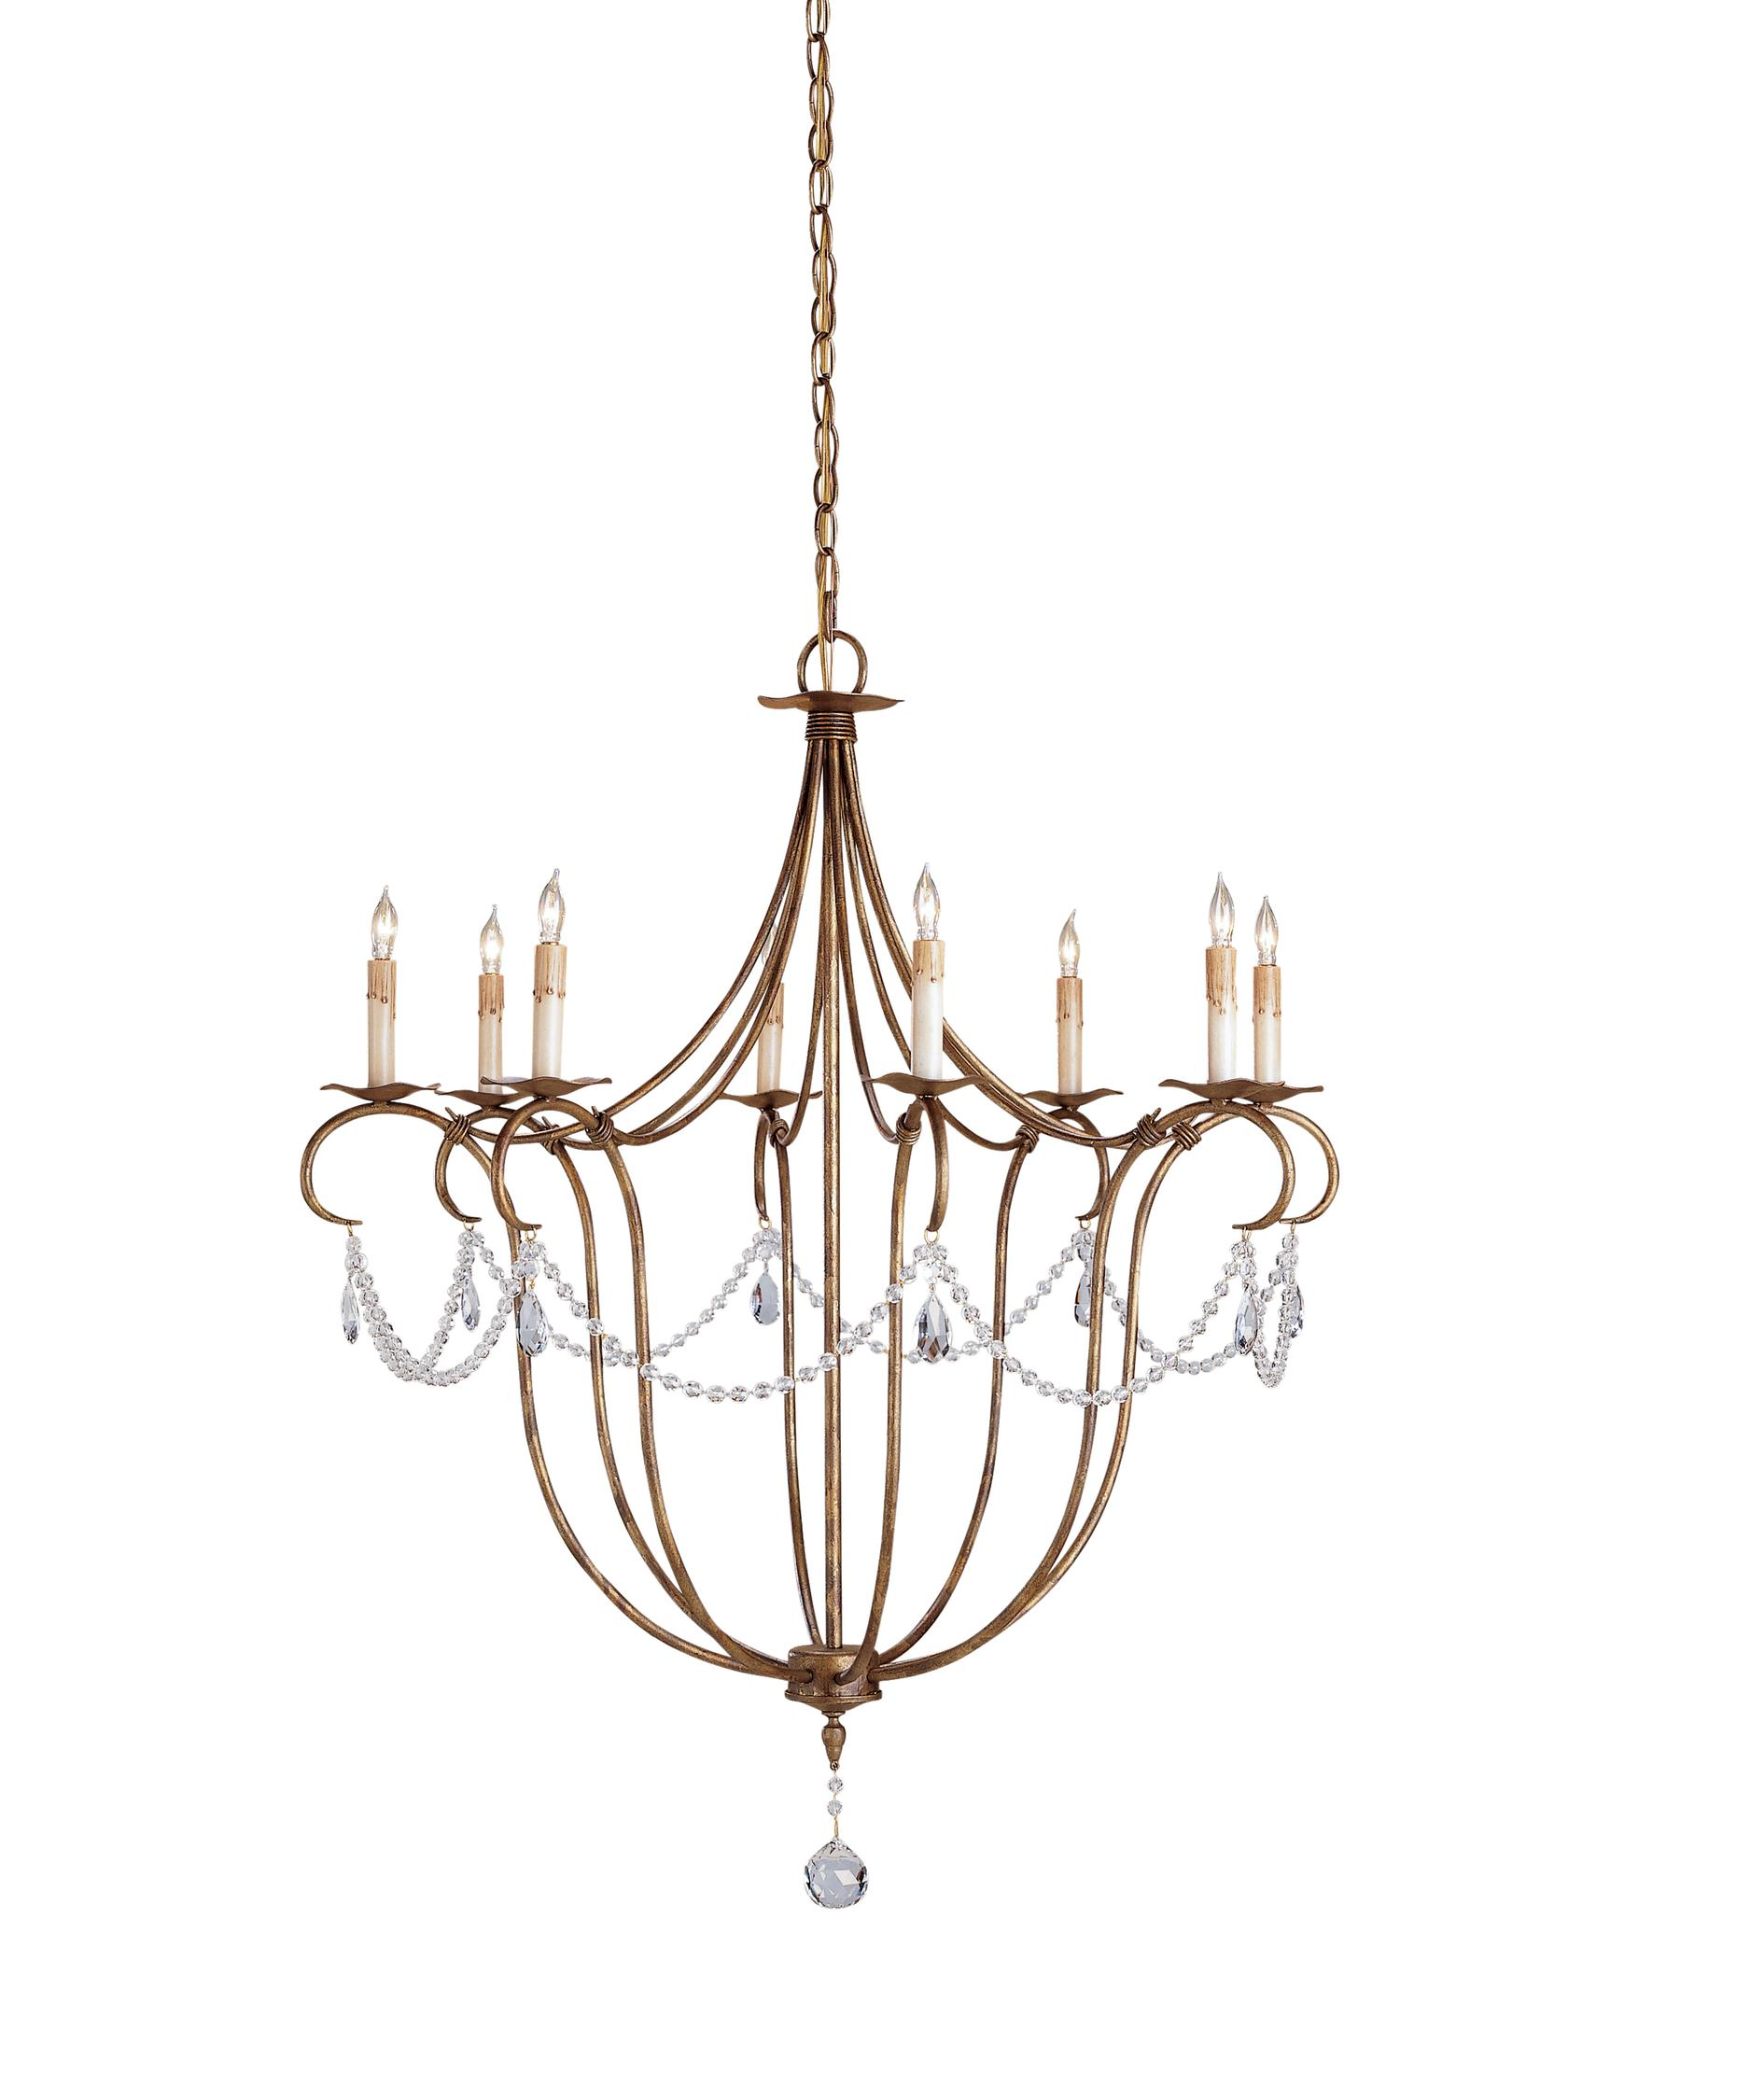 Currey Company Com: Currey And Company 9881 Crystal Lights 31 Inch Chandelier